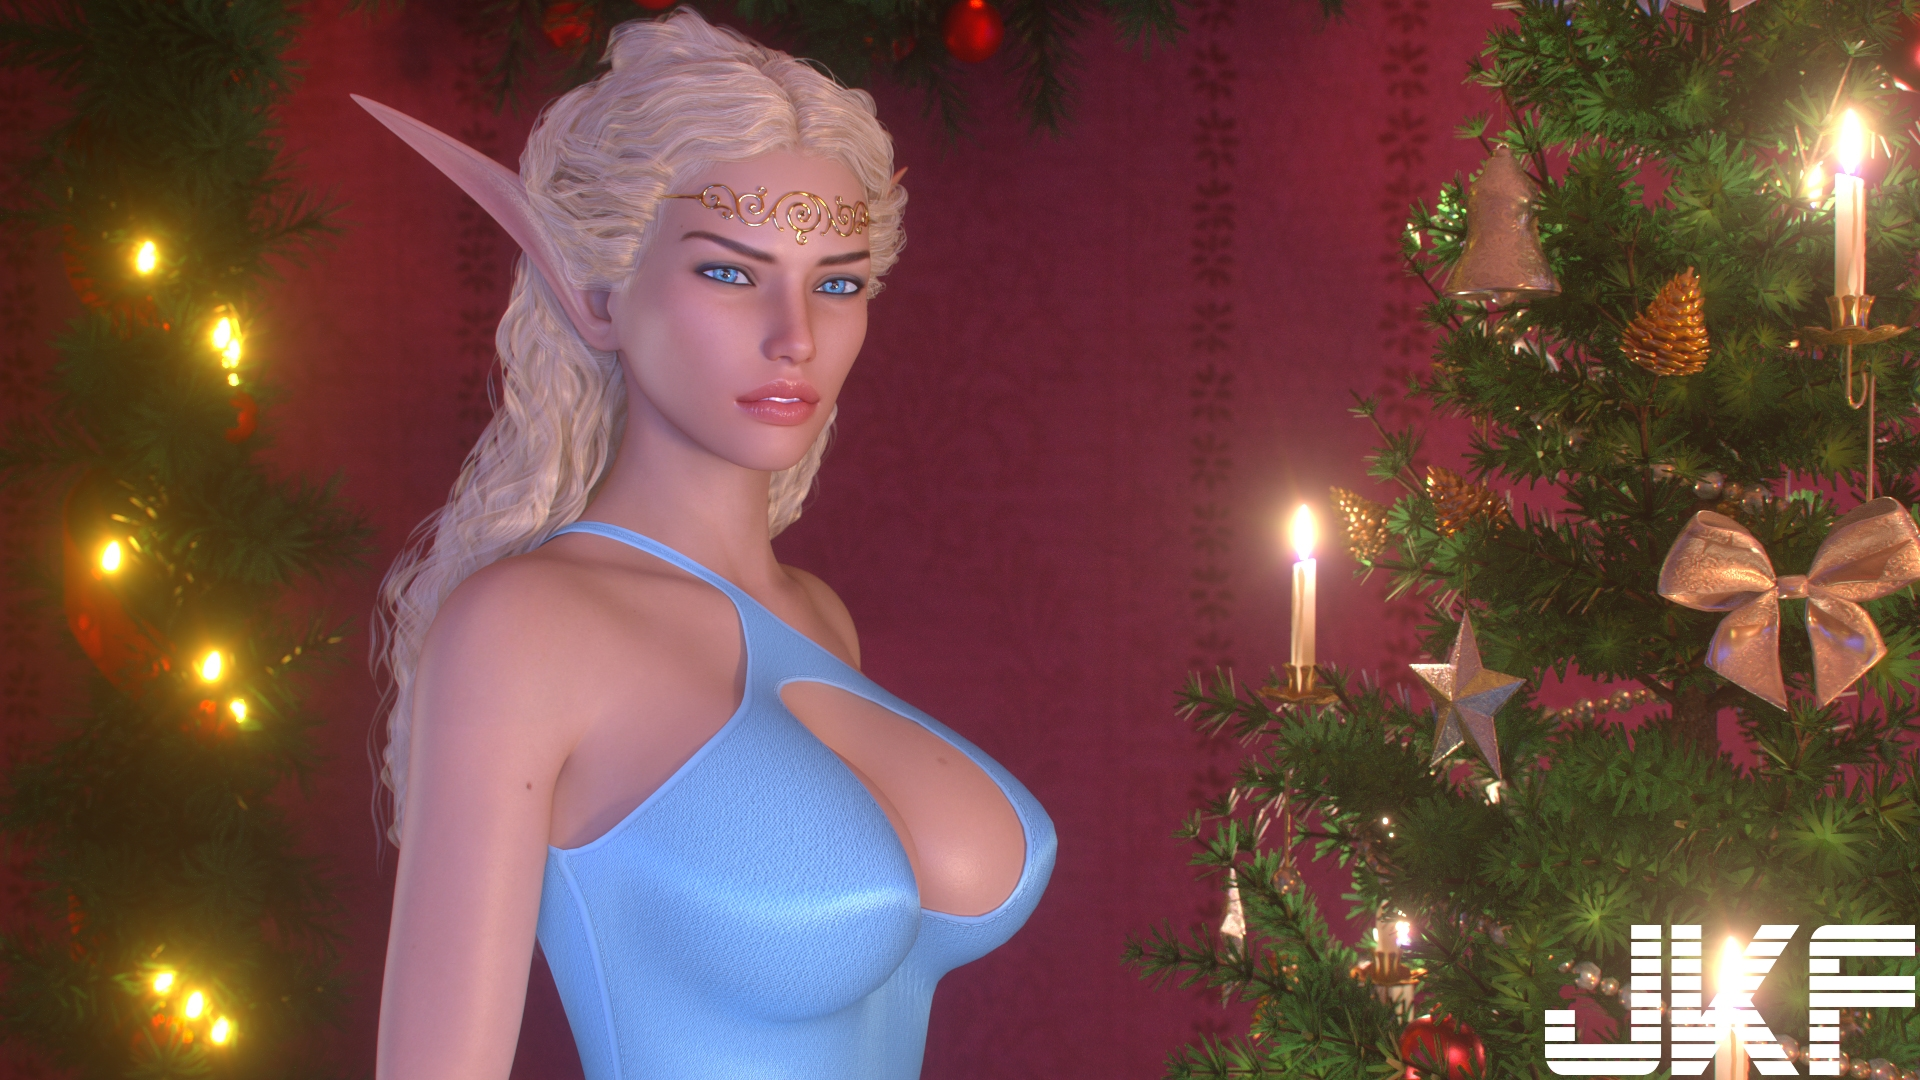 Magic_Christmas_010.jpg